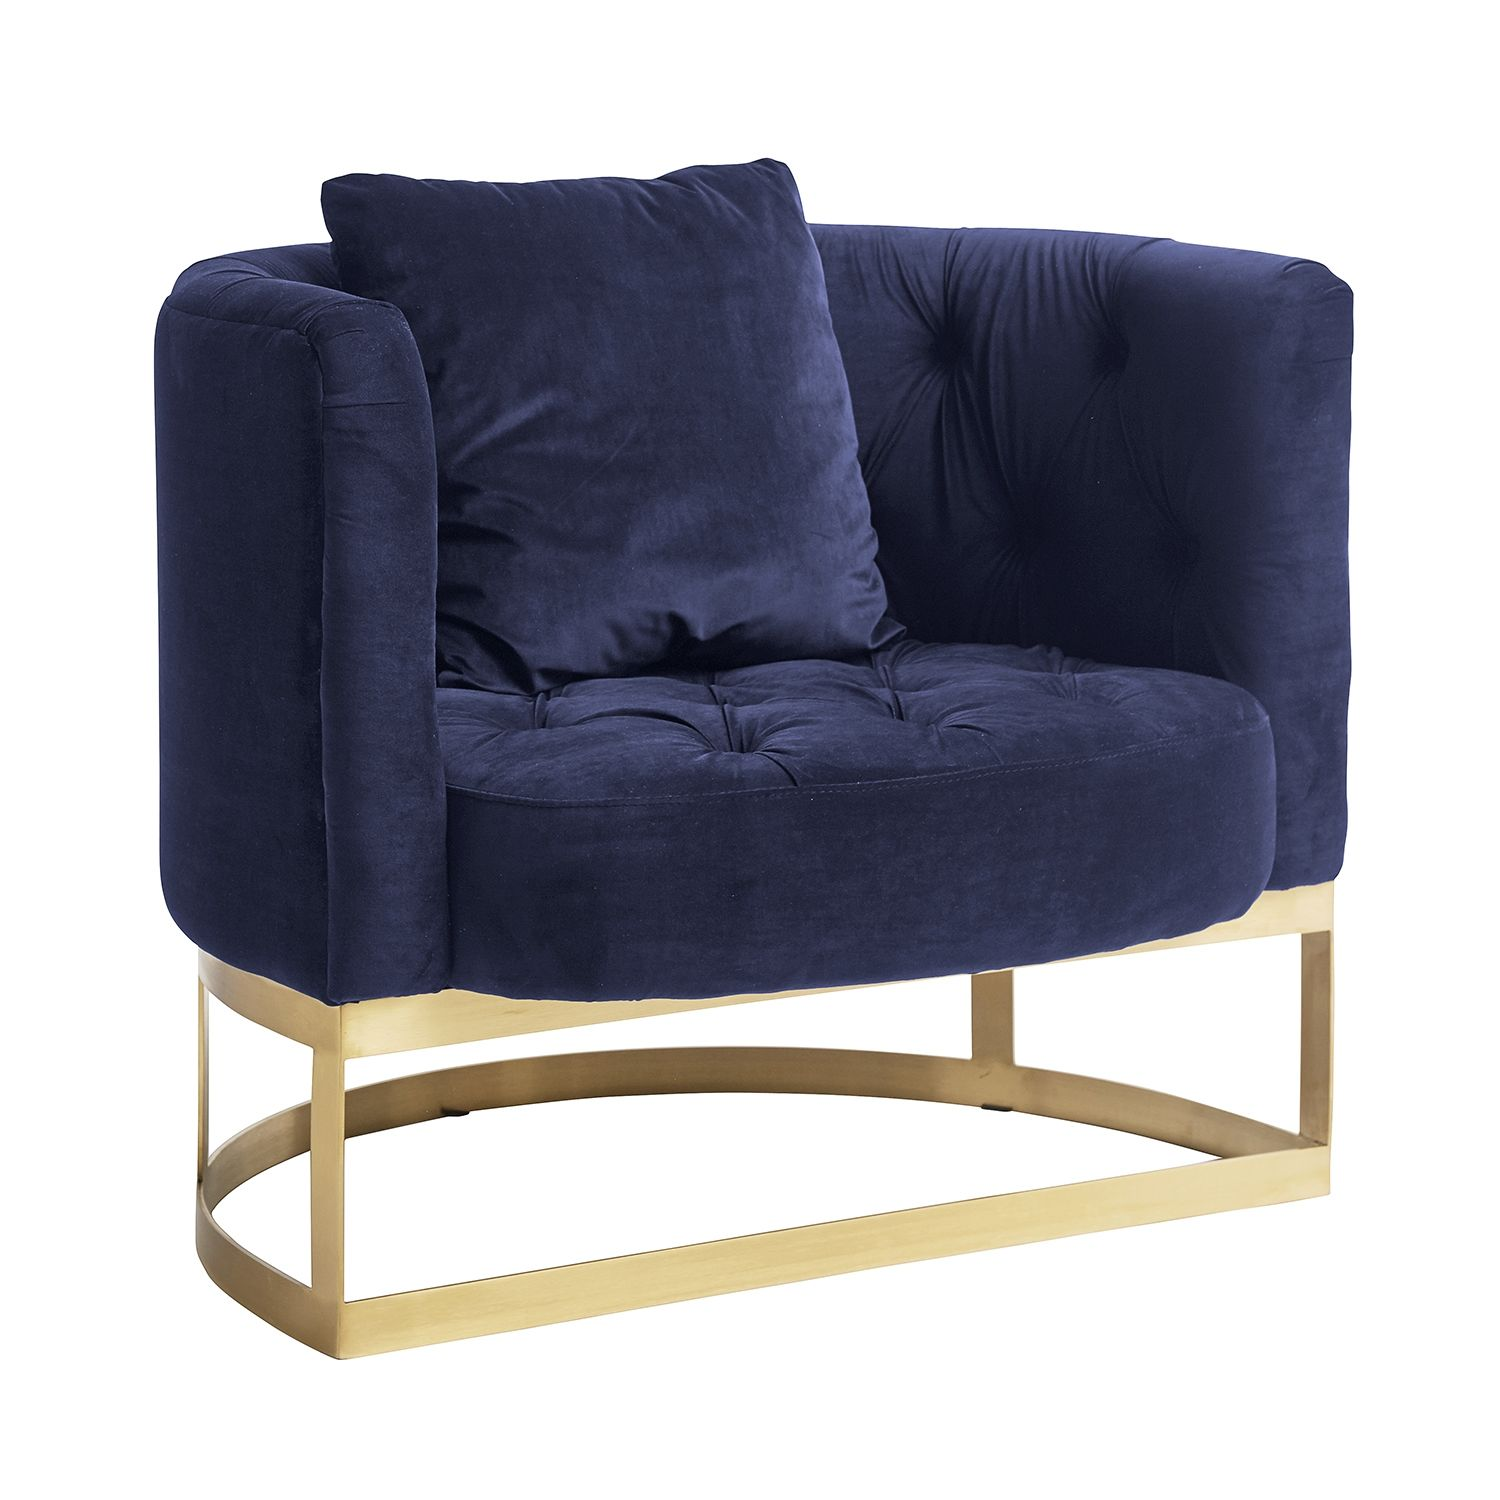 Lounge fauteuil Nordal blauw